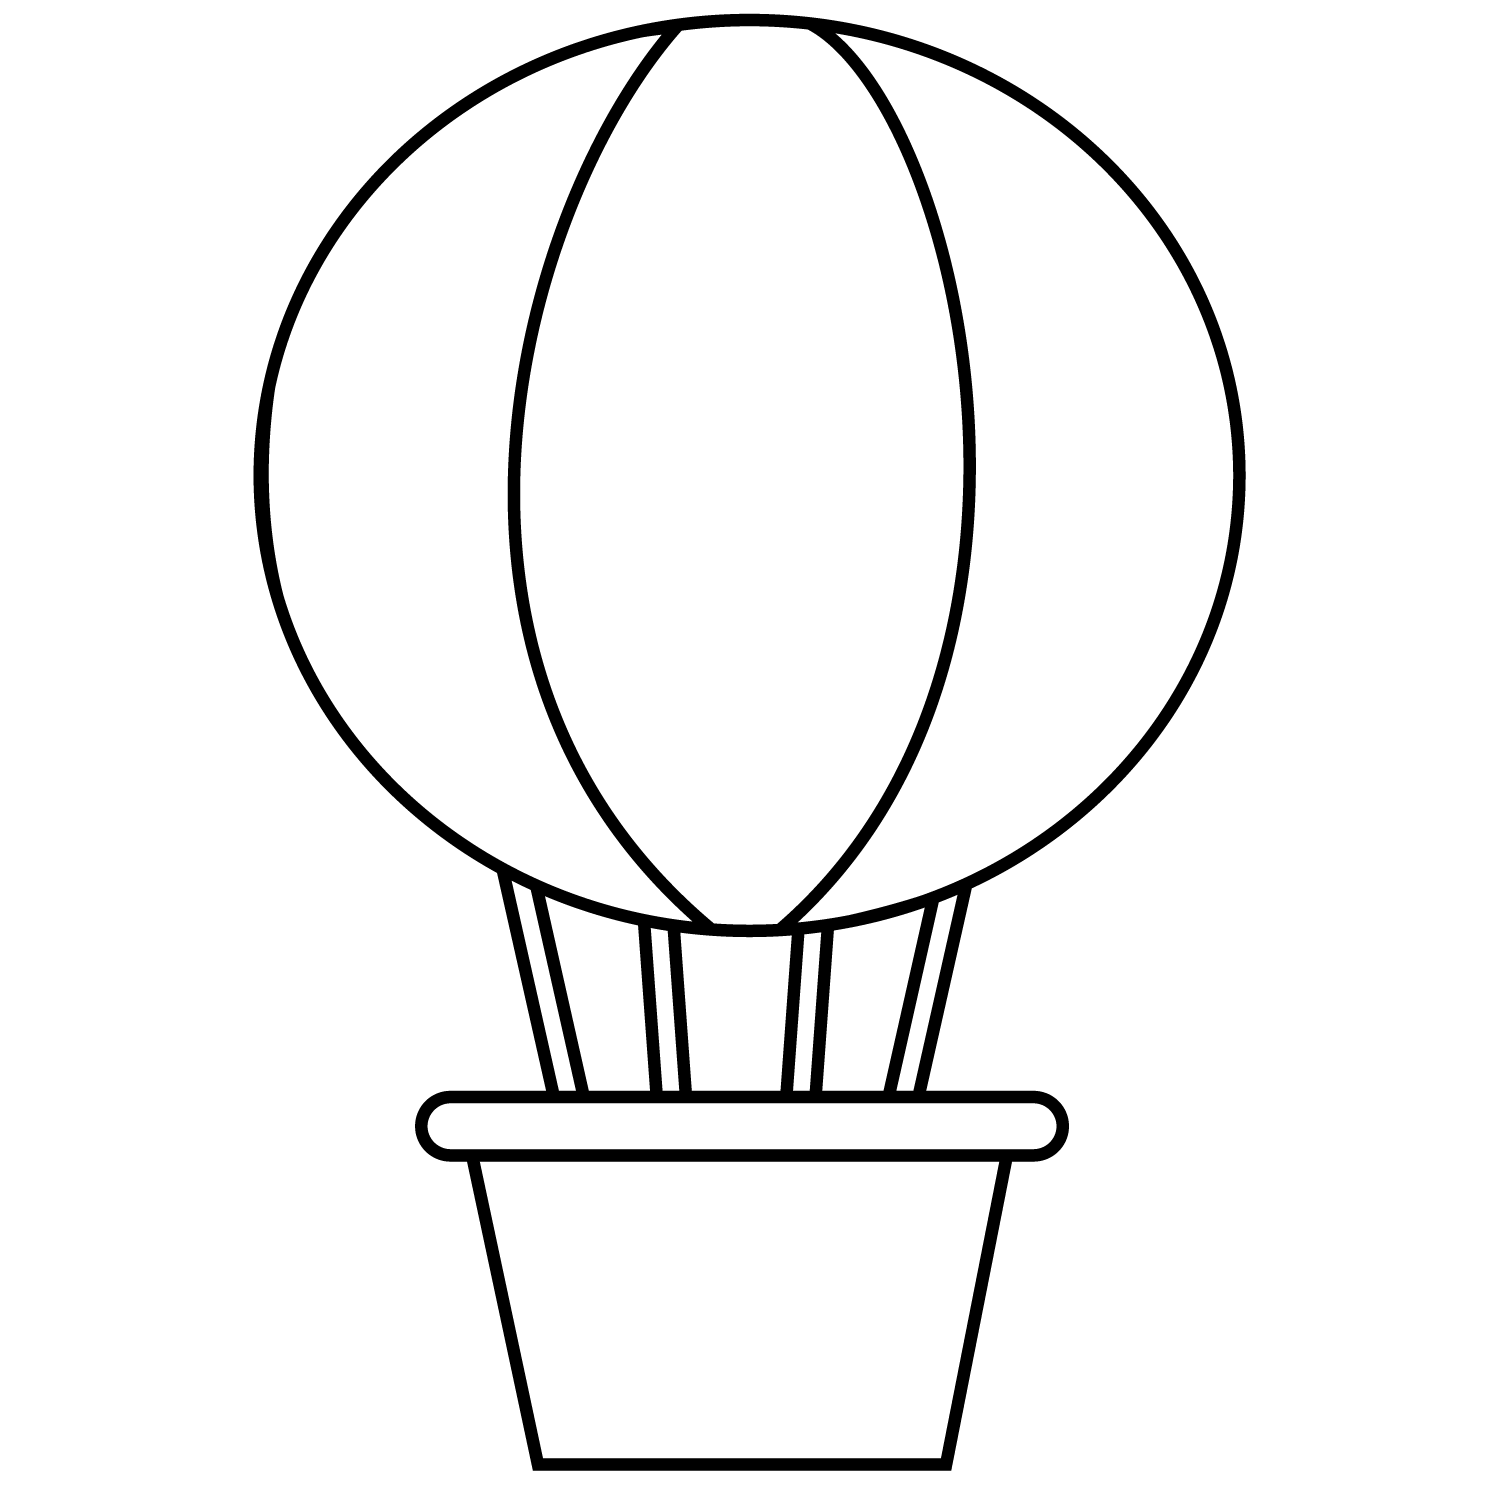 Meios de transporte png. Clipart balloon sketch